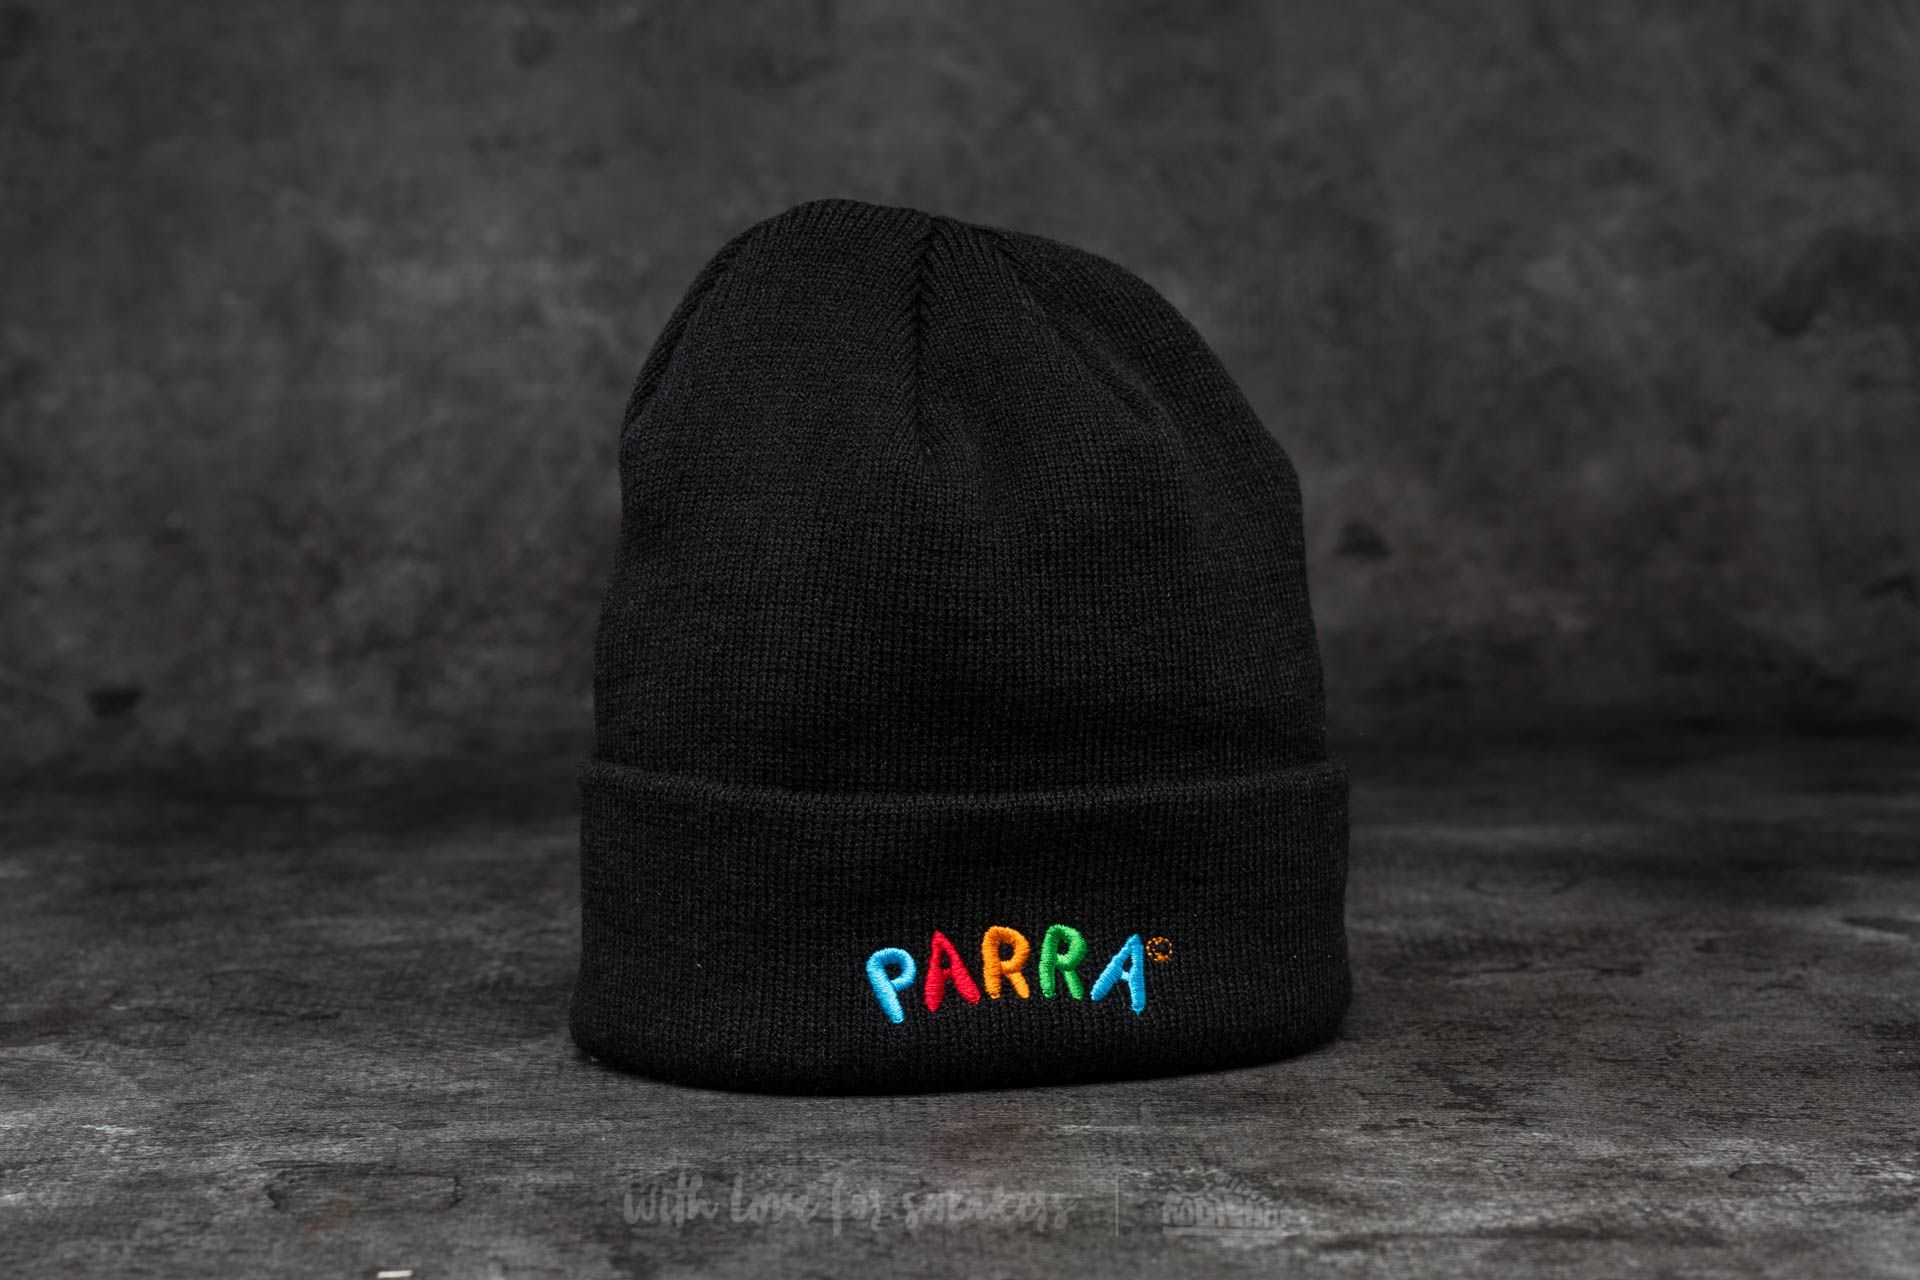 by Parra Toy Logo Beanie Black - 13690